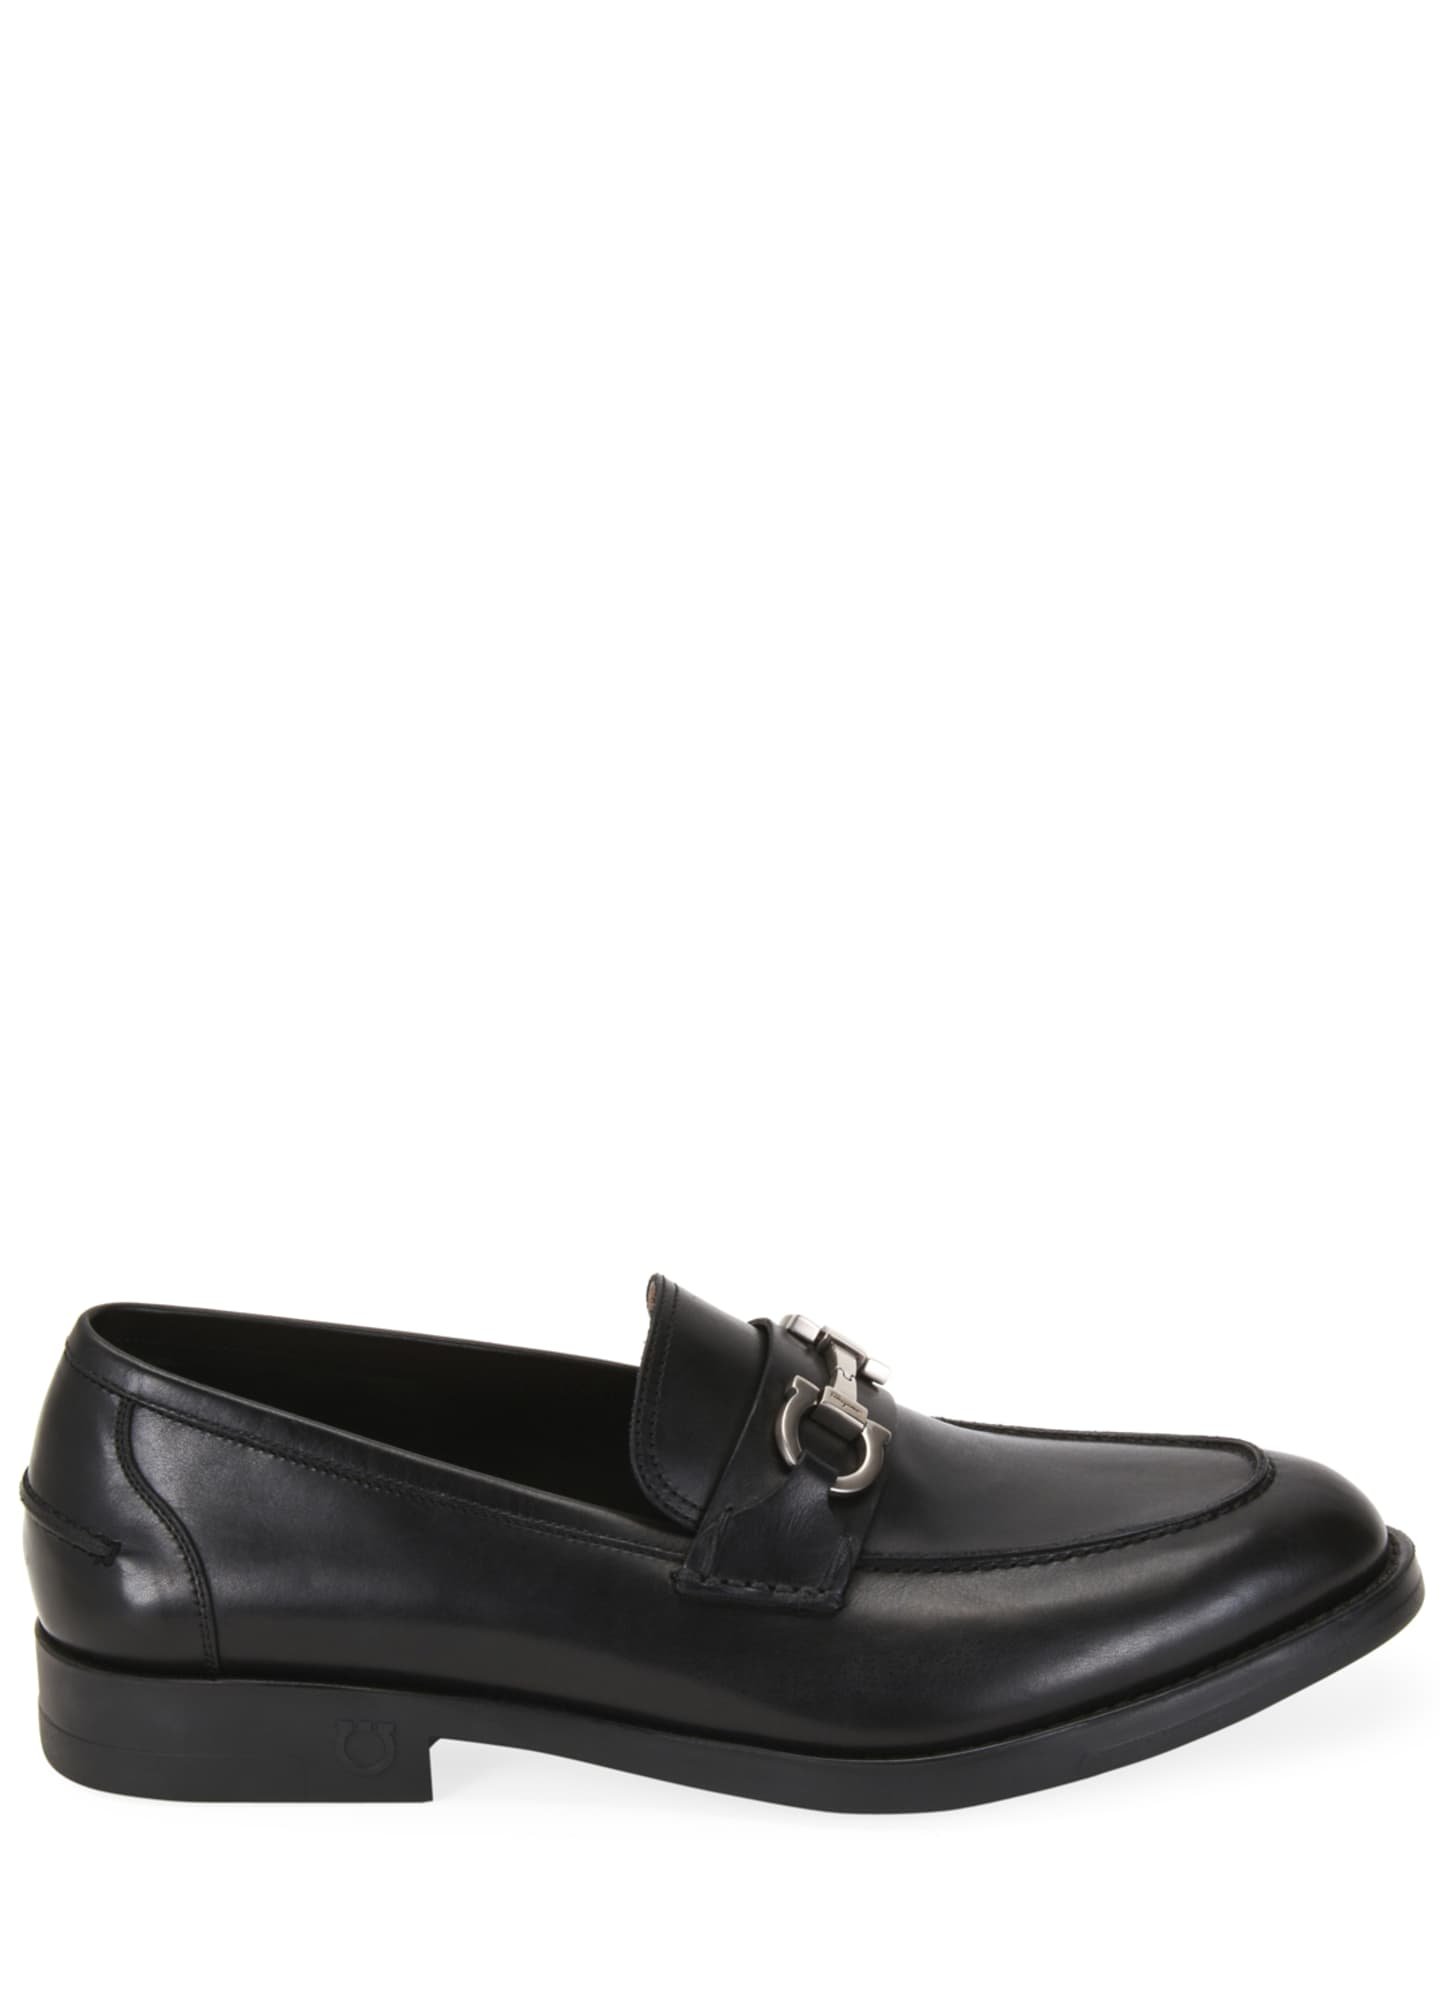 Image 3 of 4: Men's Arlin Leather Slip-On Bit Loafers